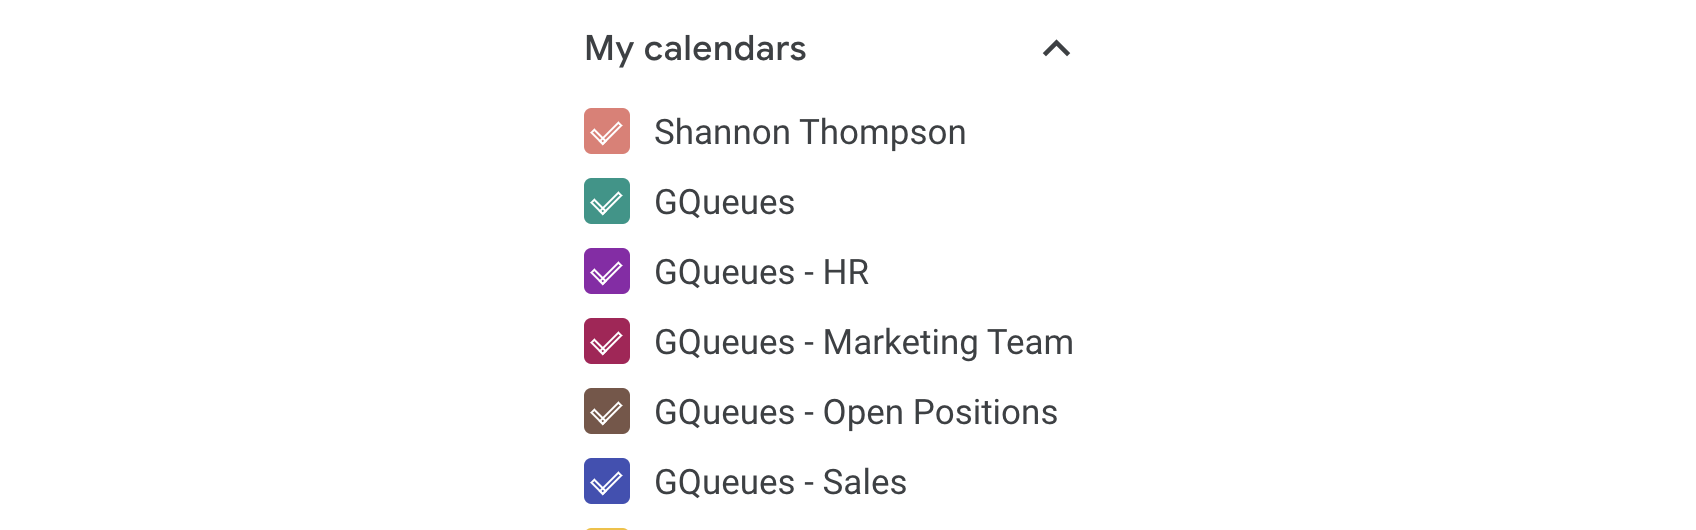 View team calendars alongside your others in Google Calendar.